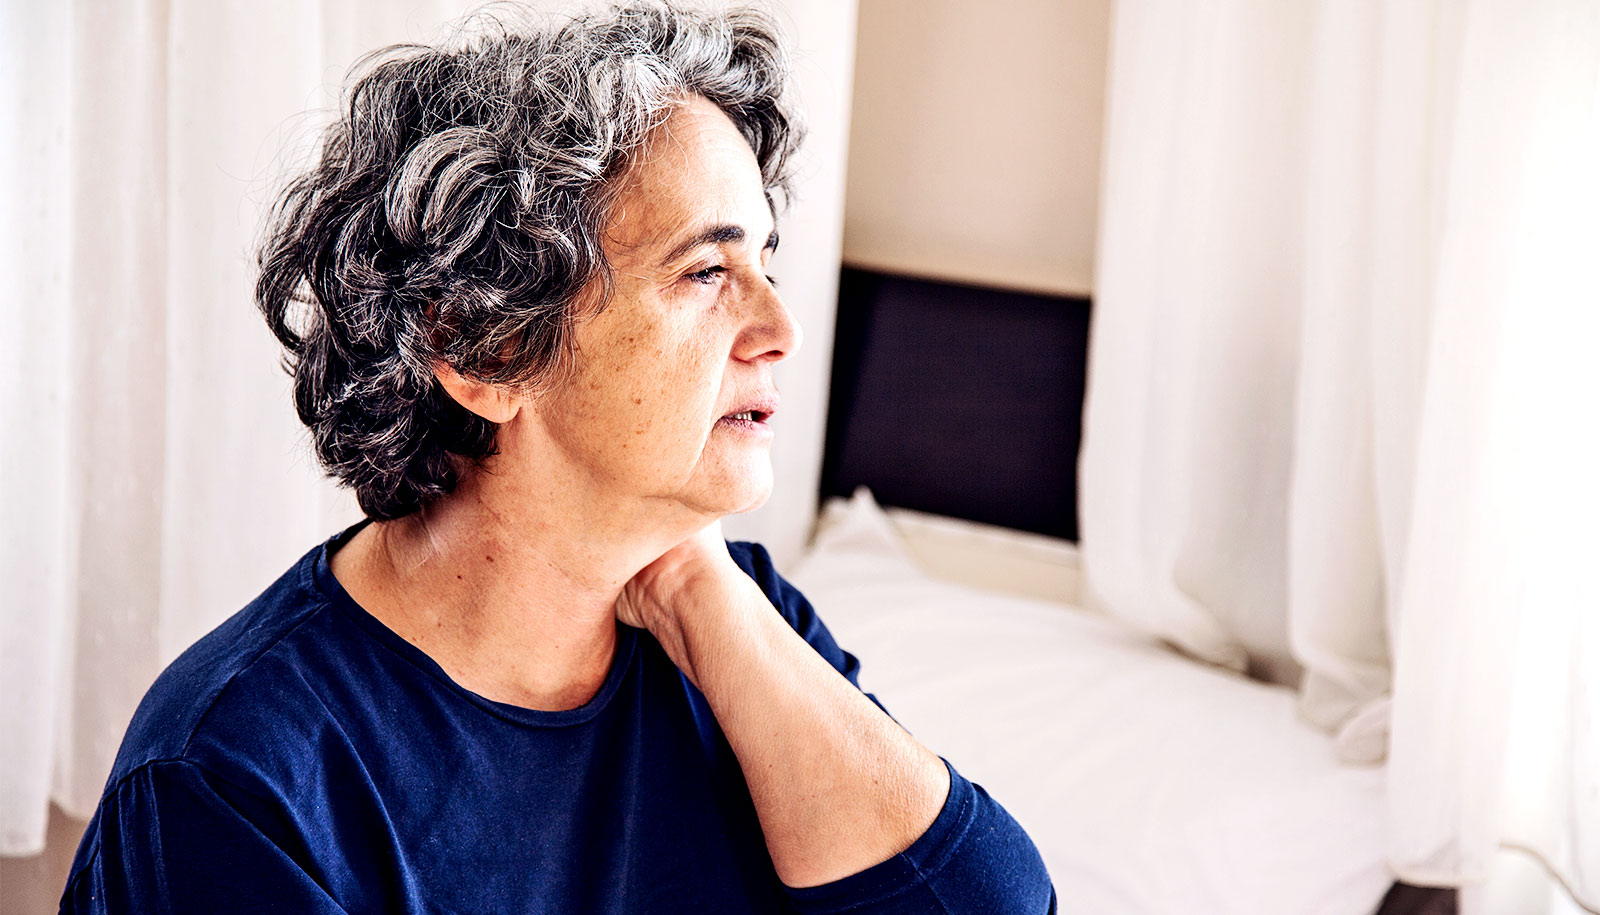 Does poor sleep in your 50s warn of Alzheimer's?